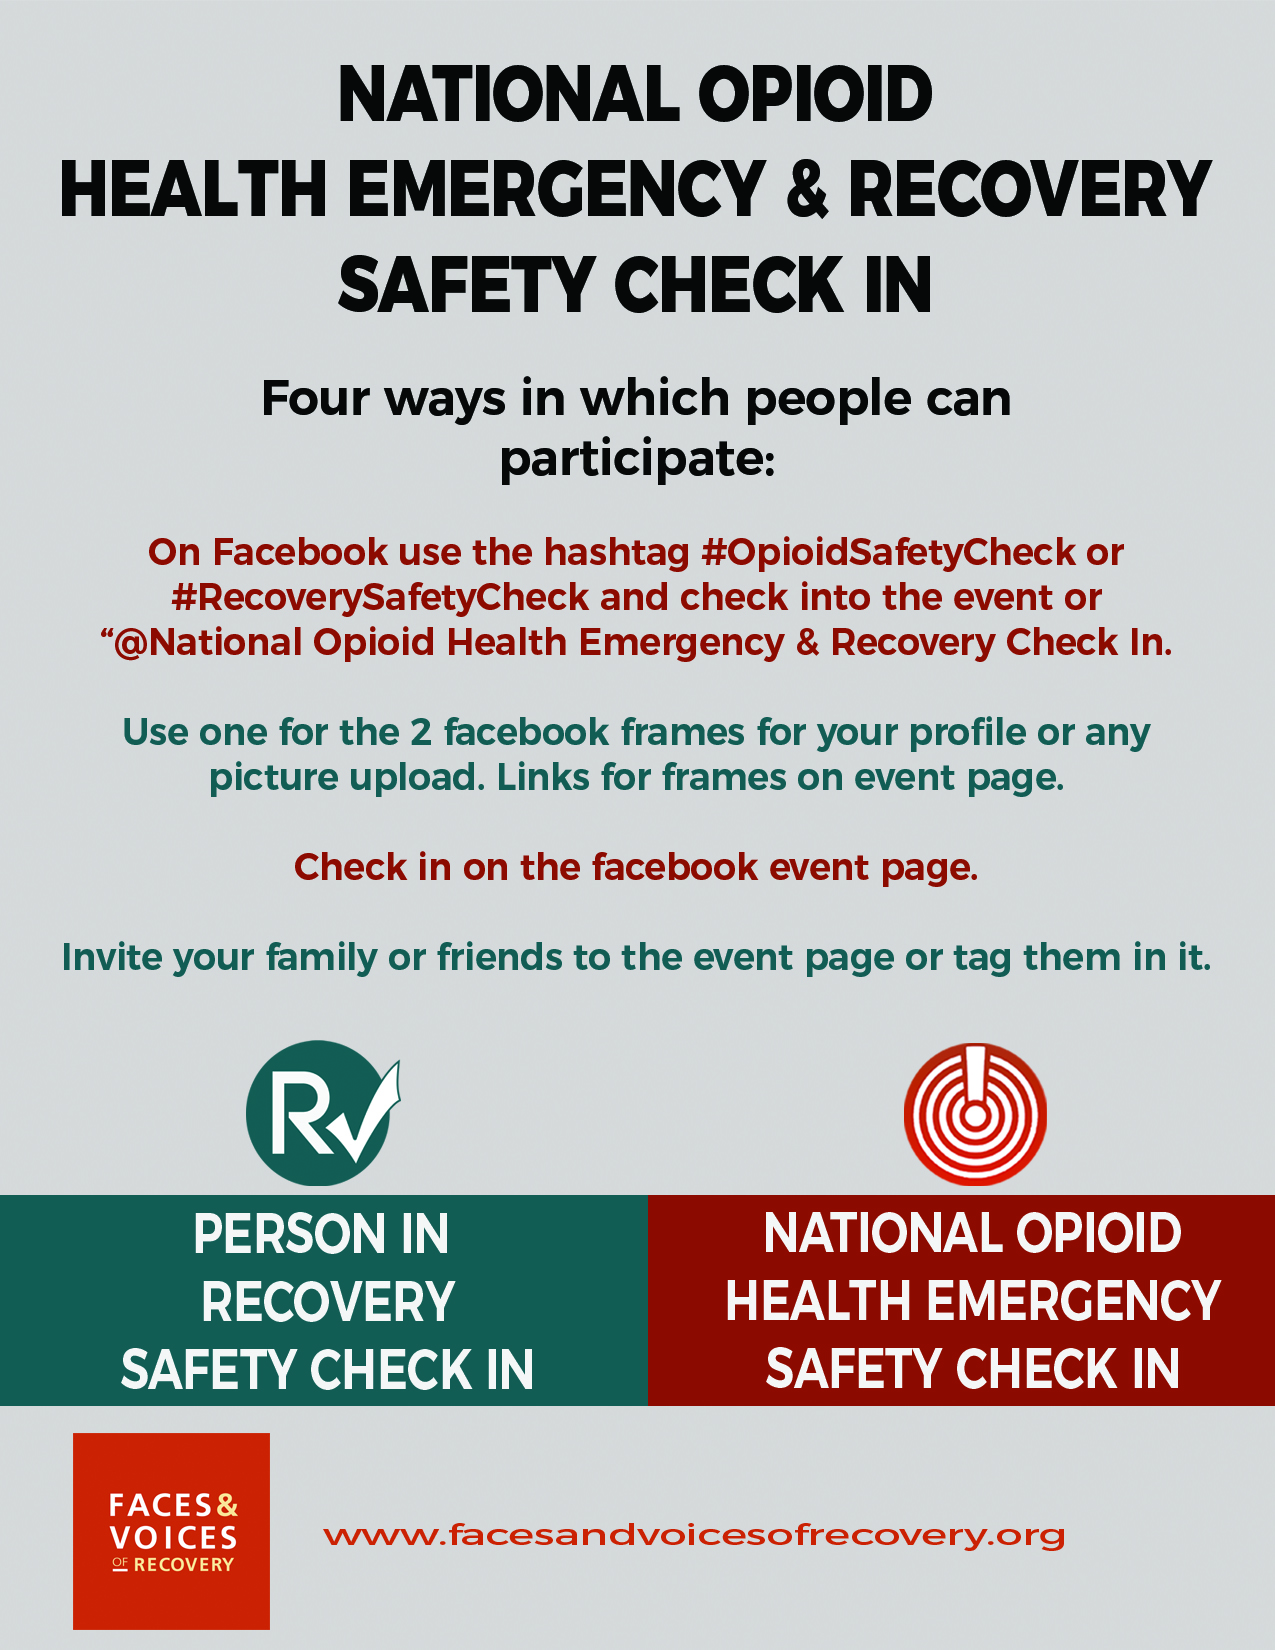 National Opioid Health Emergency & Recovery Safety Check In